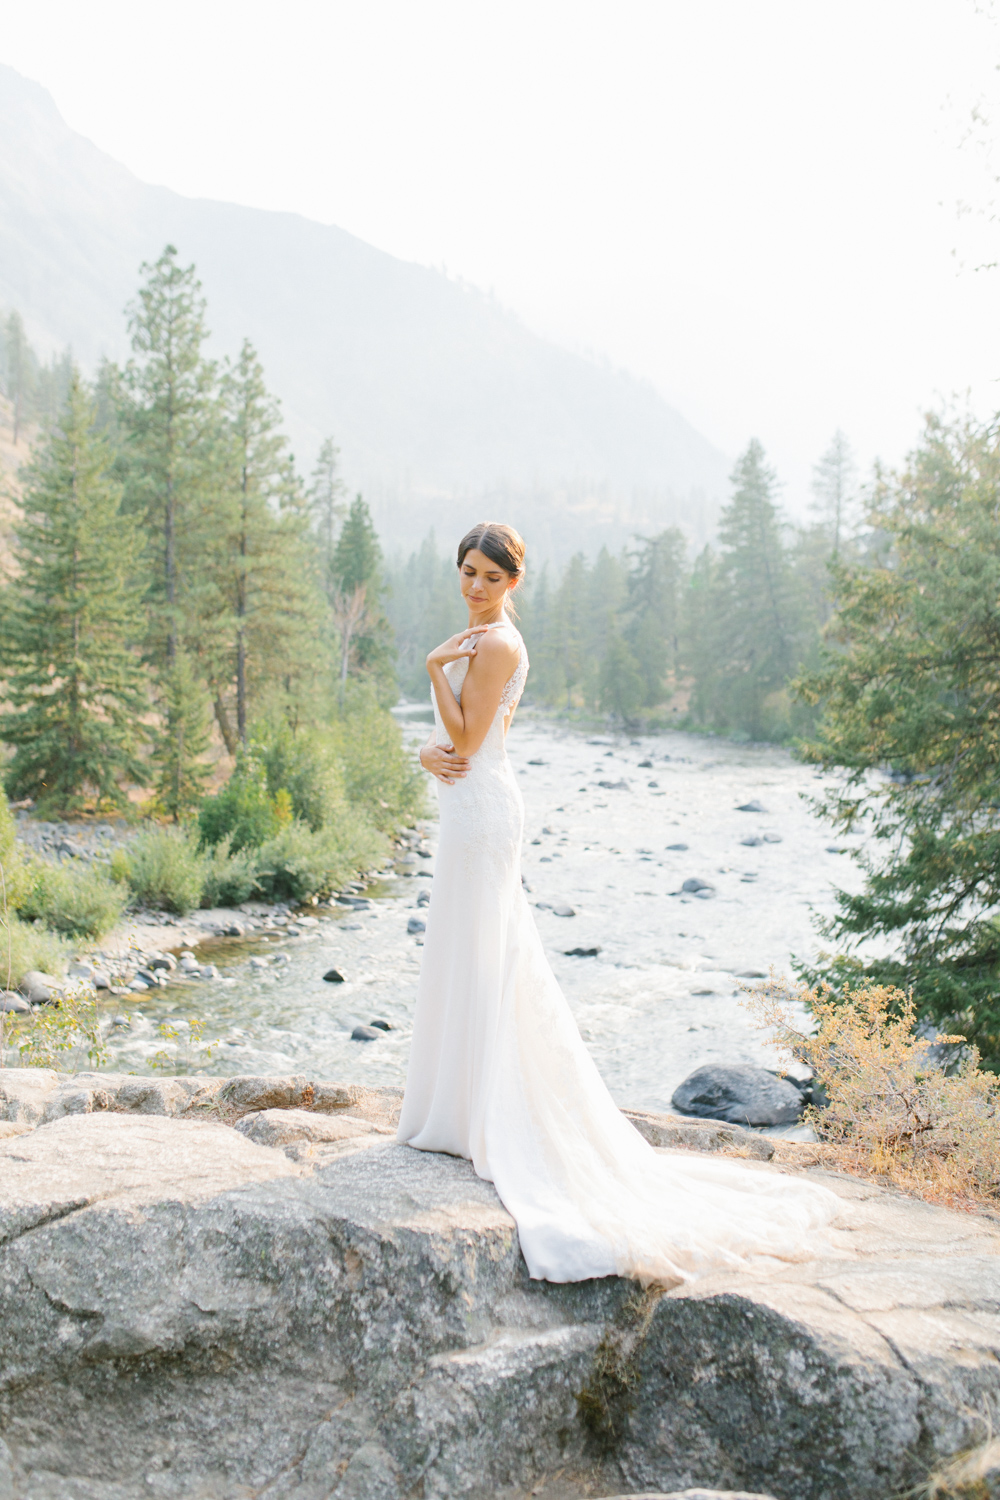 Grey and White Wedding in the Mountains of Leavenworth, Washington | Sleeping Lady | Classic and Timeless Wedding | VSCO | Stunning Mountain Top Bride and Groom Portraits on the Icicle River.jpg-3284.jpg